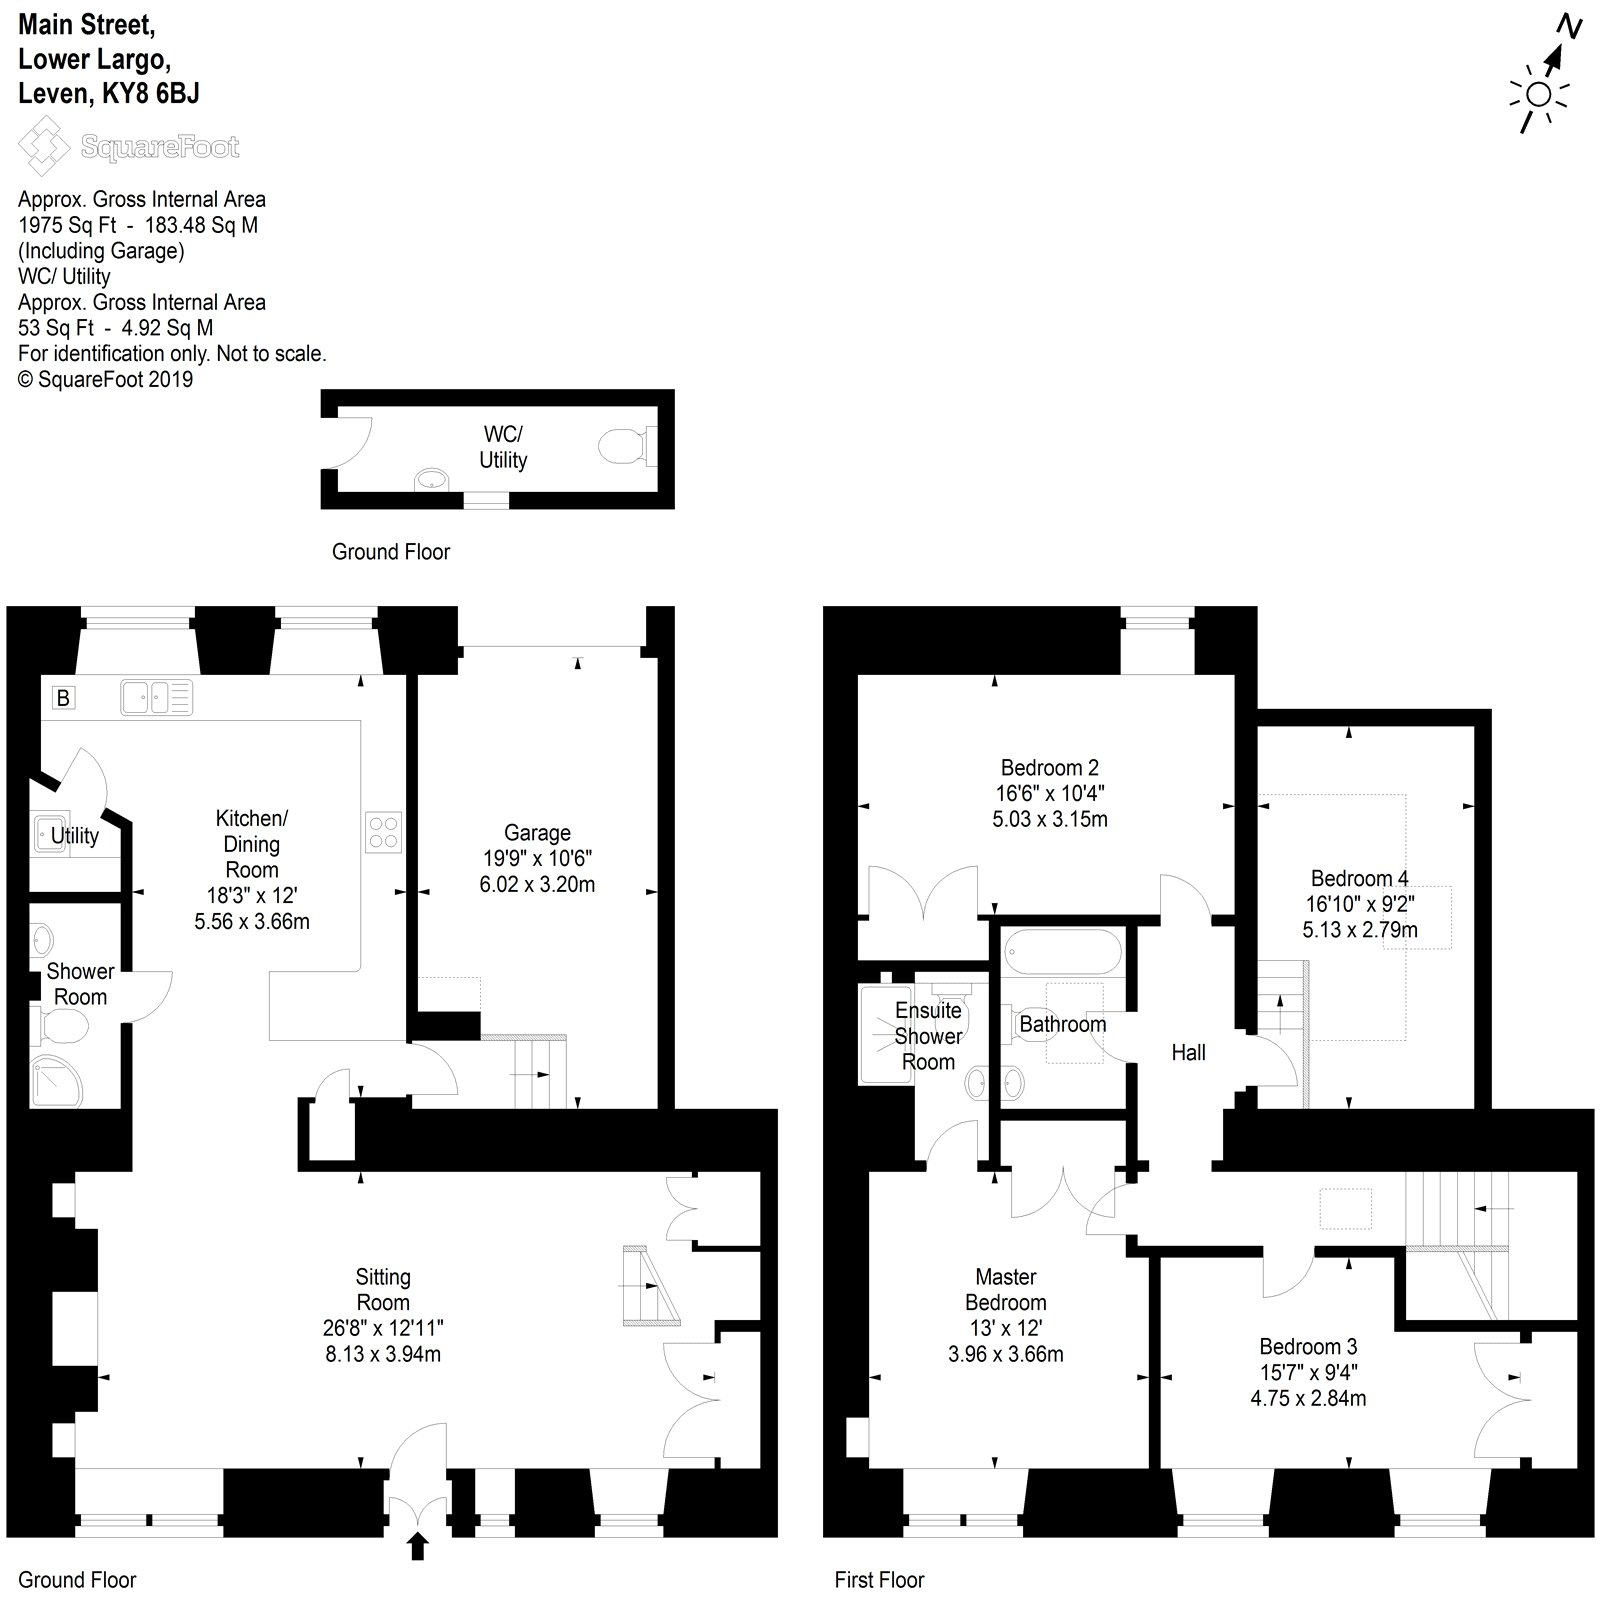 Floorplans for Main Street, Lower Largo, Leven, KY8